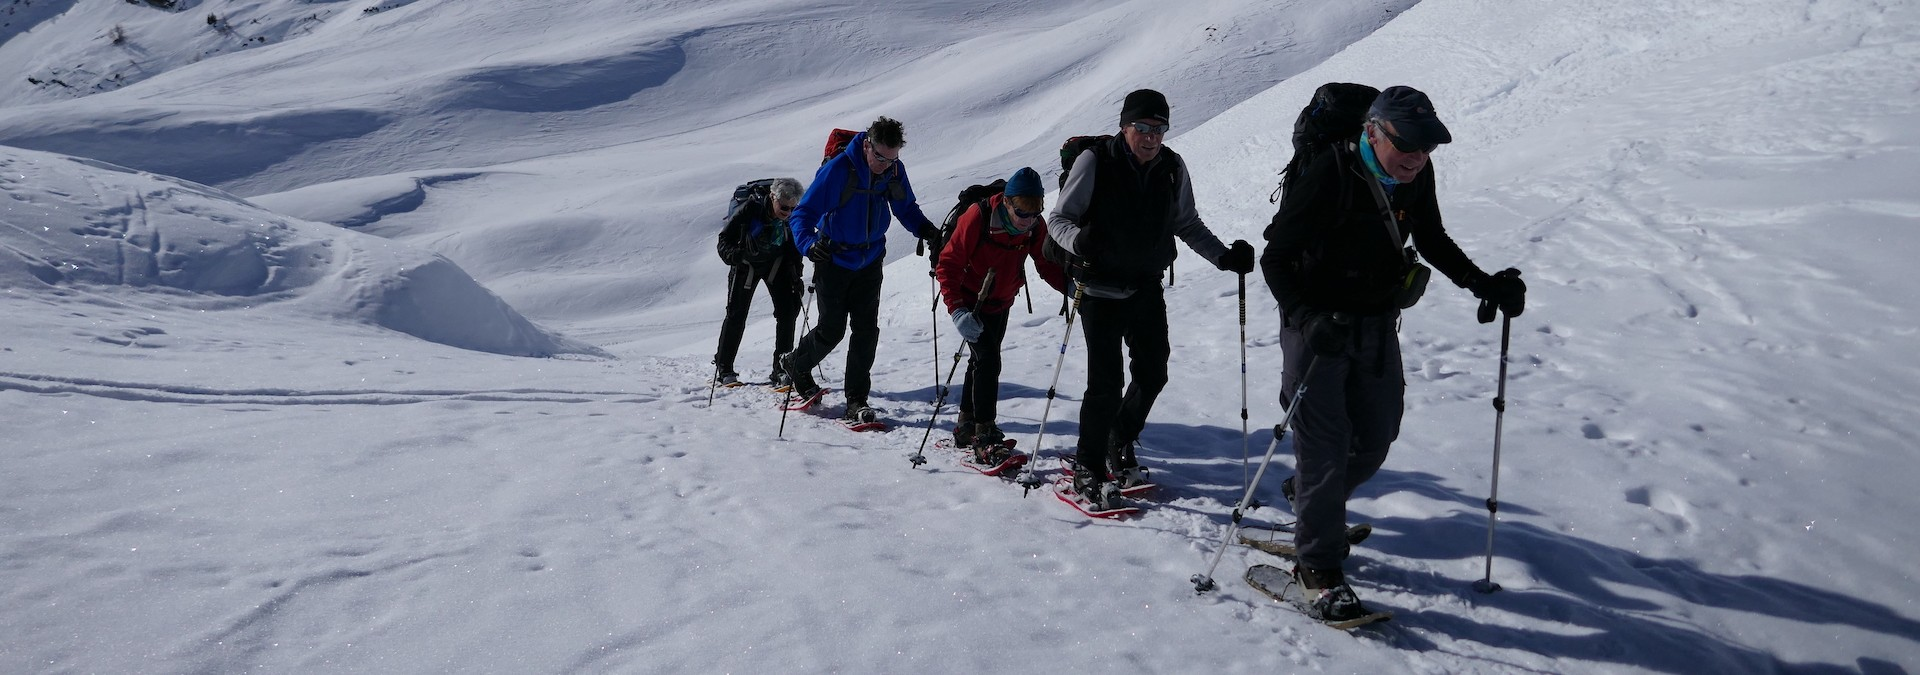 Snowshoeing in the Vanoise